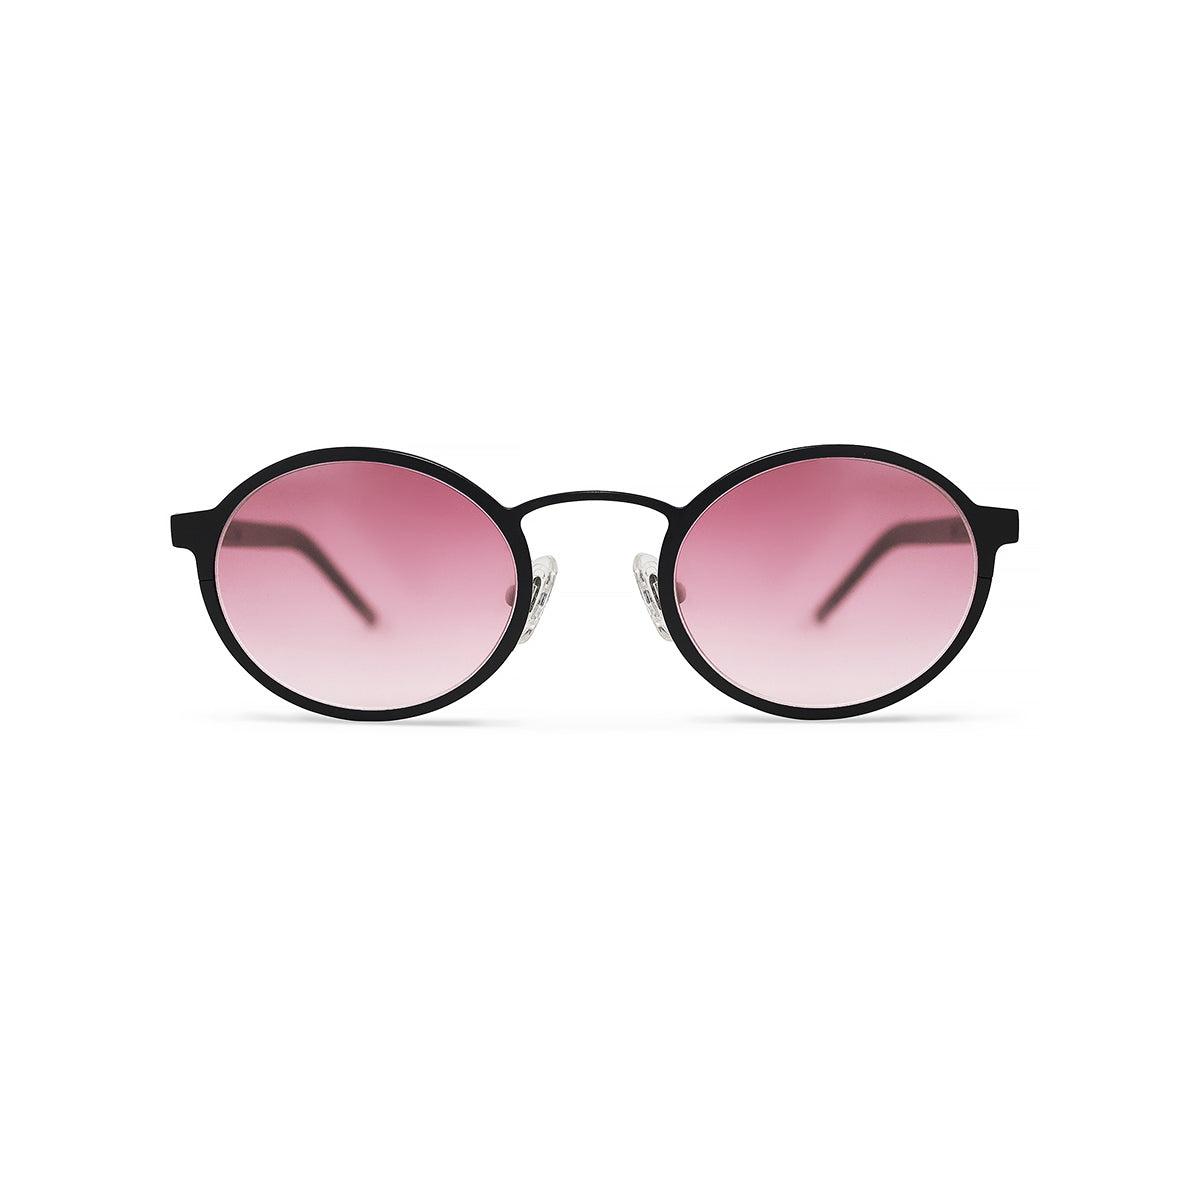 Metal. Matte Black. Blush Lens. - BLYSZAK eyewear eyewear - eyewear, optical, sunglasses